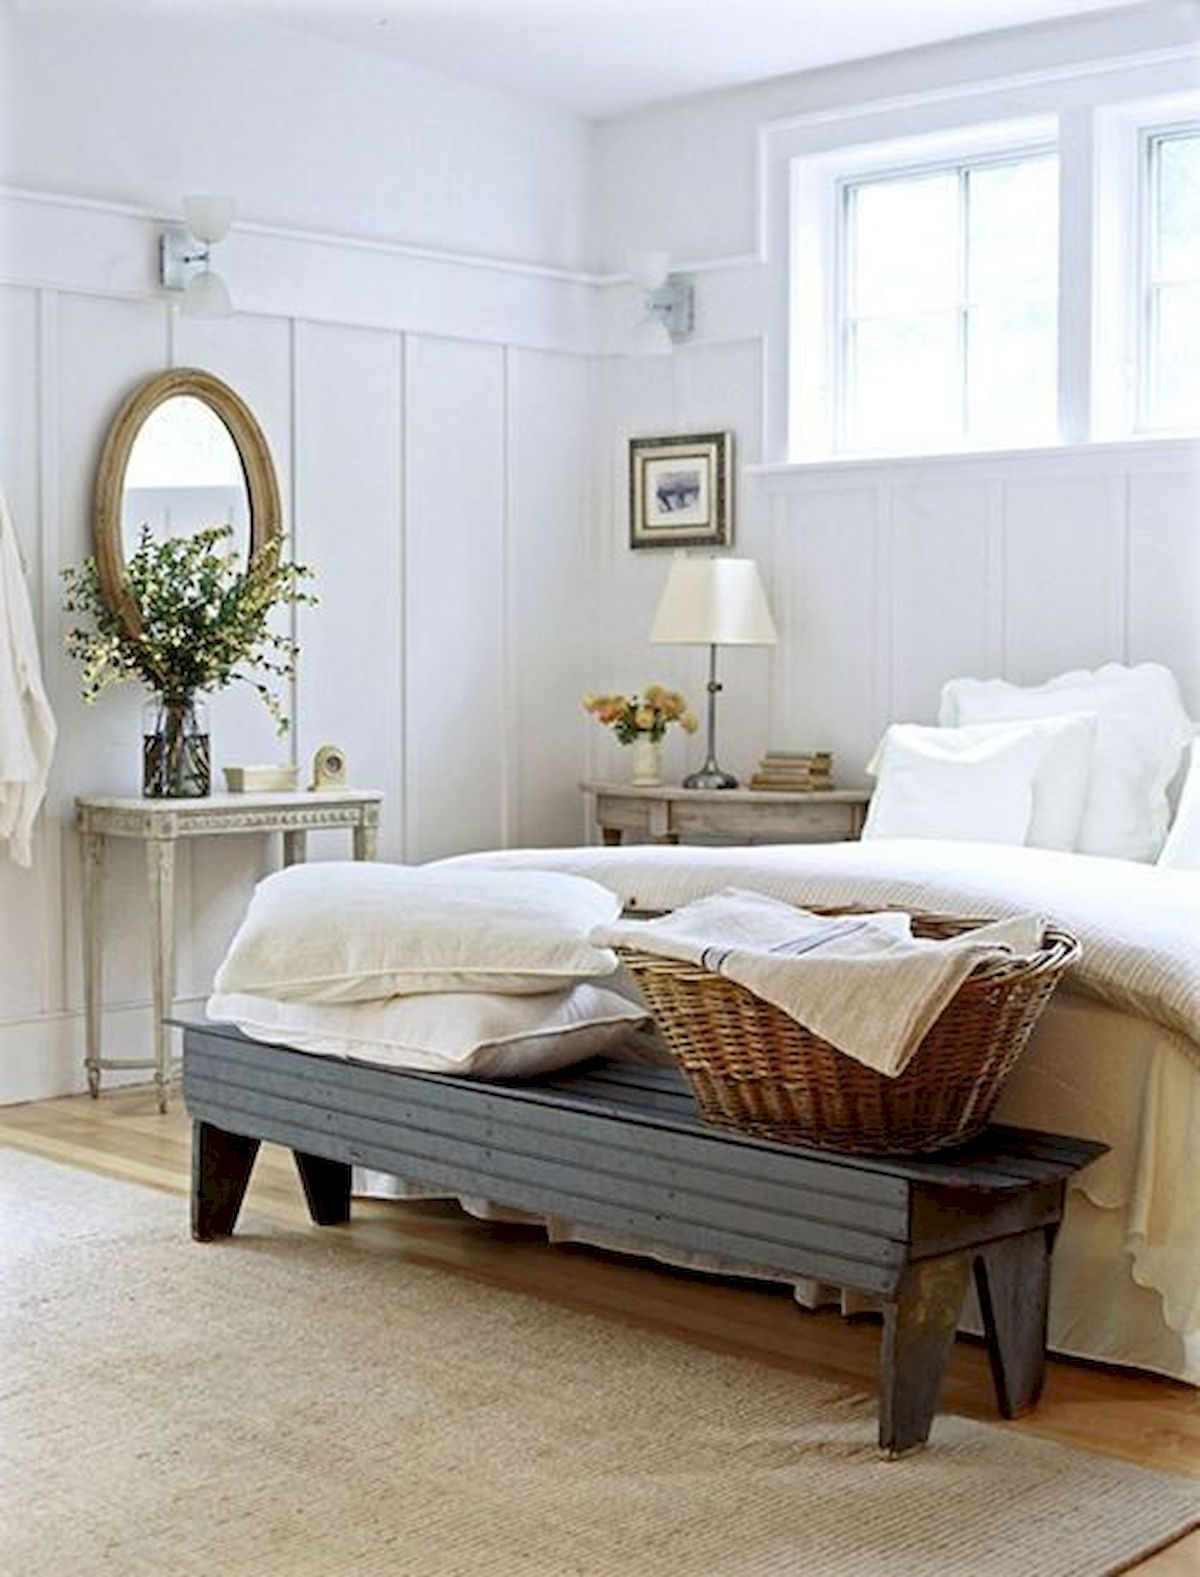 40 Classic Farmhouse Bedroom Design And Decor Ideas That Make Your Home Feel Great (3)